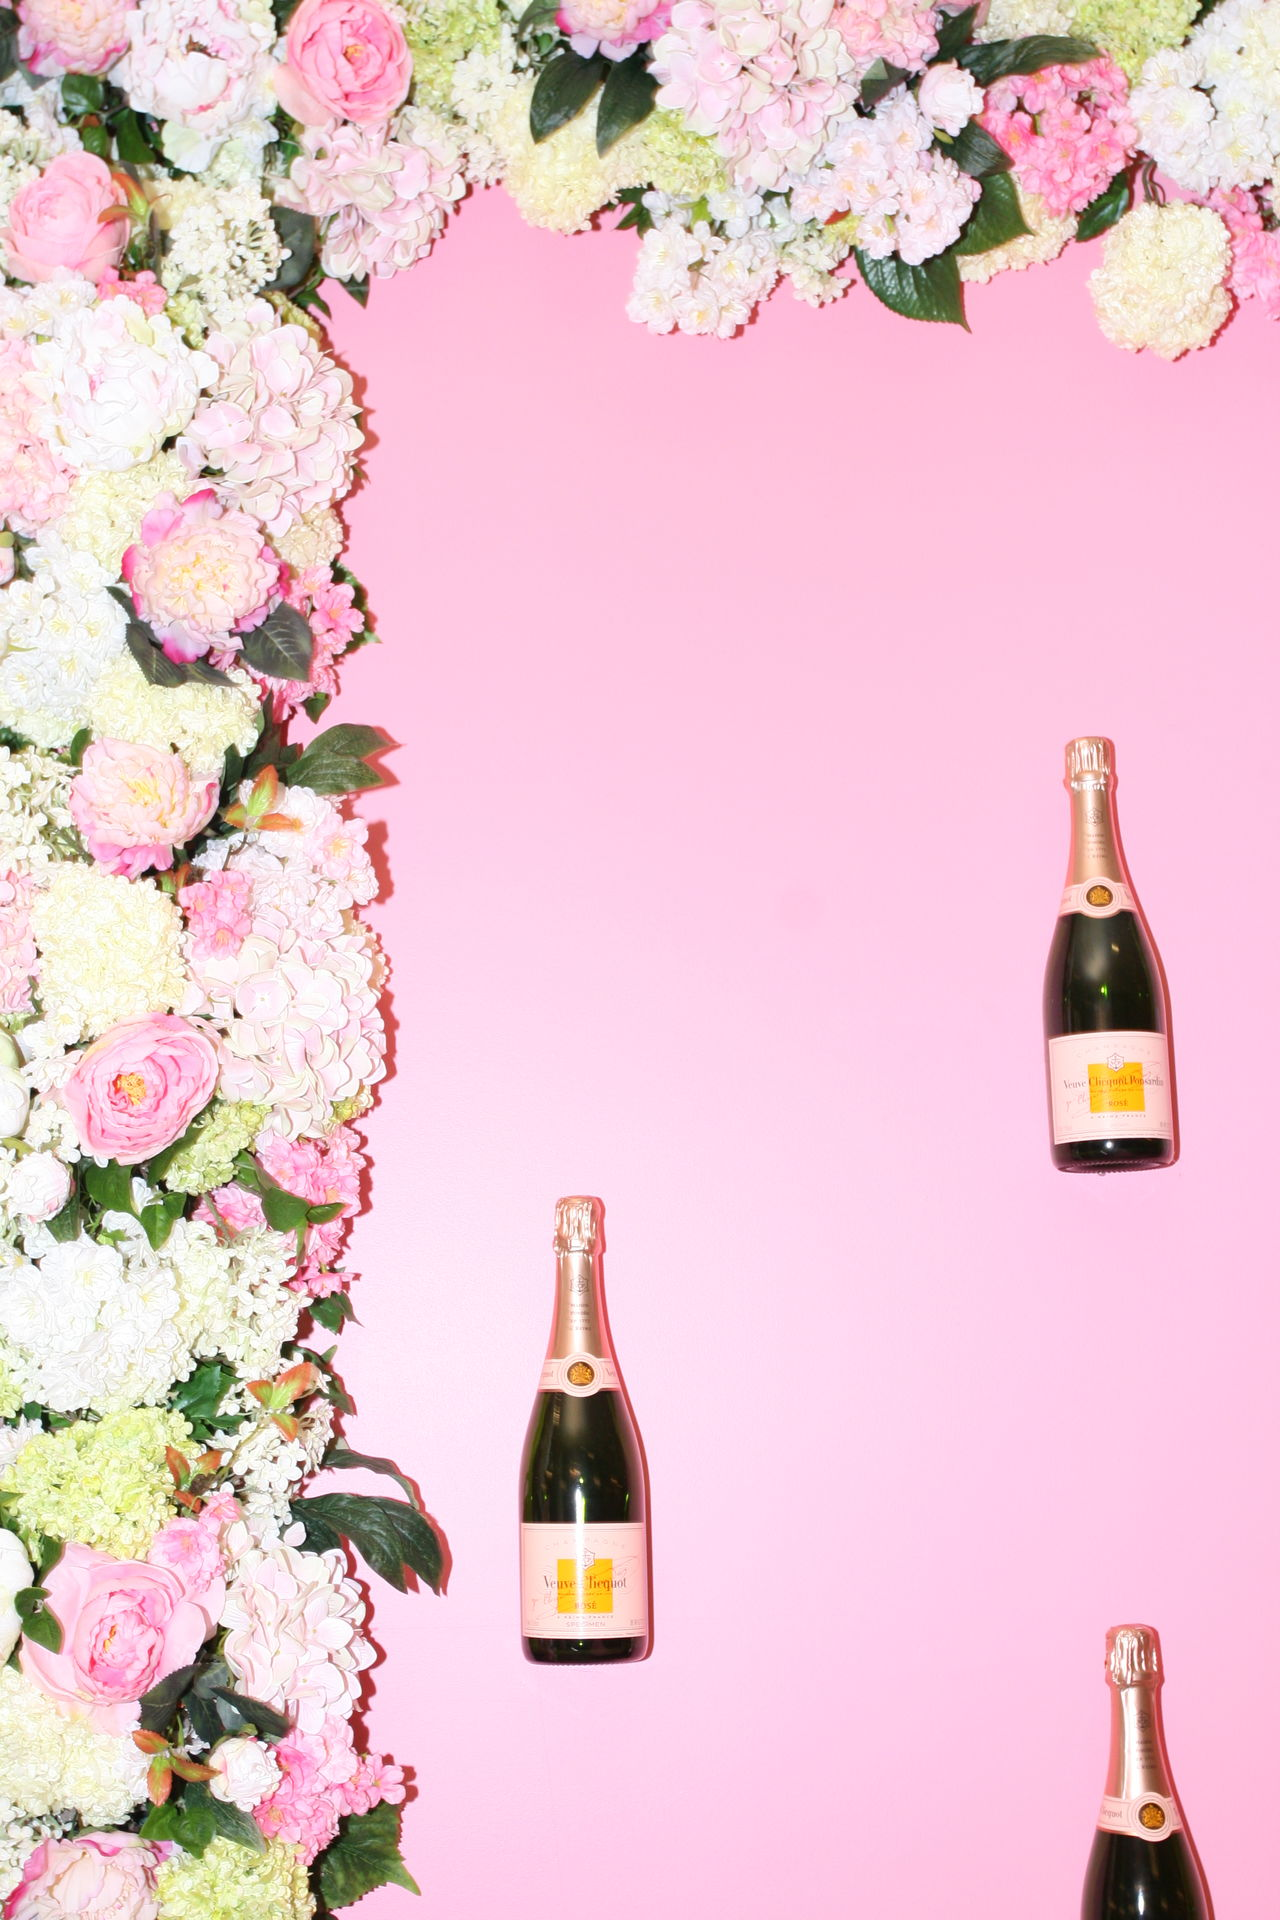 Alcohol Bottle Bouquet Celebration Cork - Stopper Day Drink Drinking Glass Floral Flower Food And Drink Nature No People Pastel Pink Wine Wine Bottle